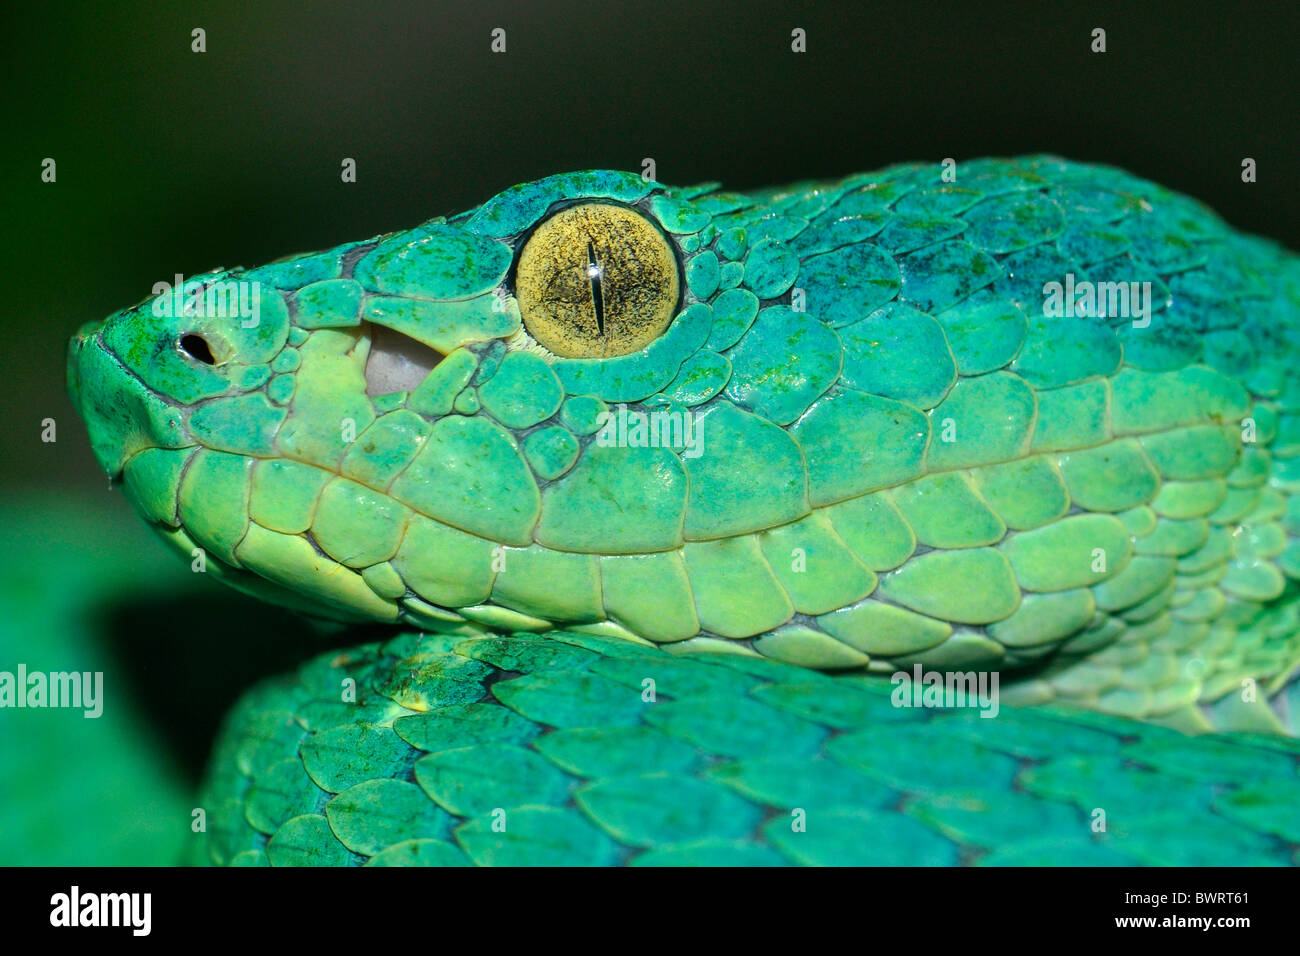 Side-striped palm pitviper (Bothriechis lateralis) this species is found in mountain areas of Costa Rica and Panama. - Stock Image